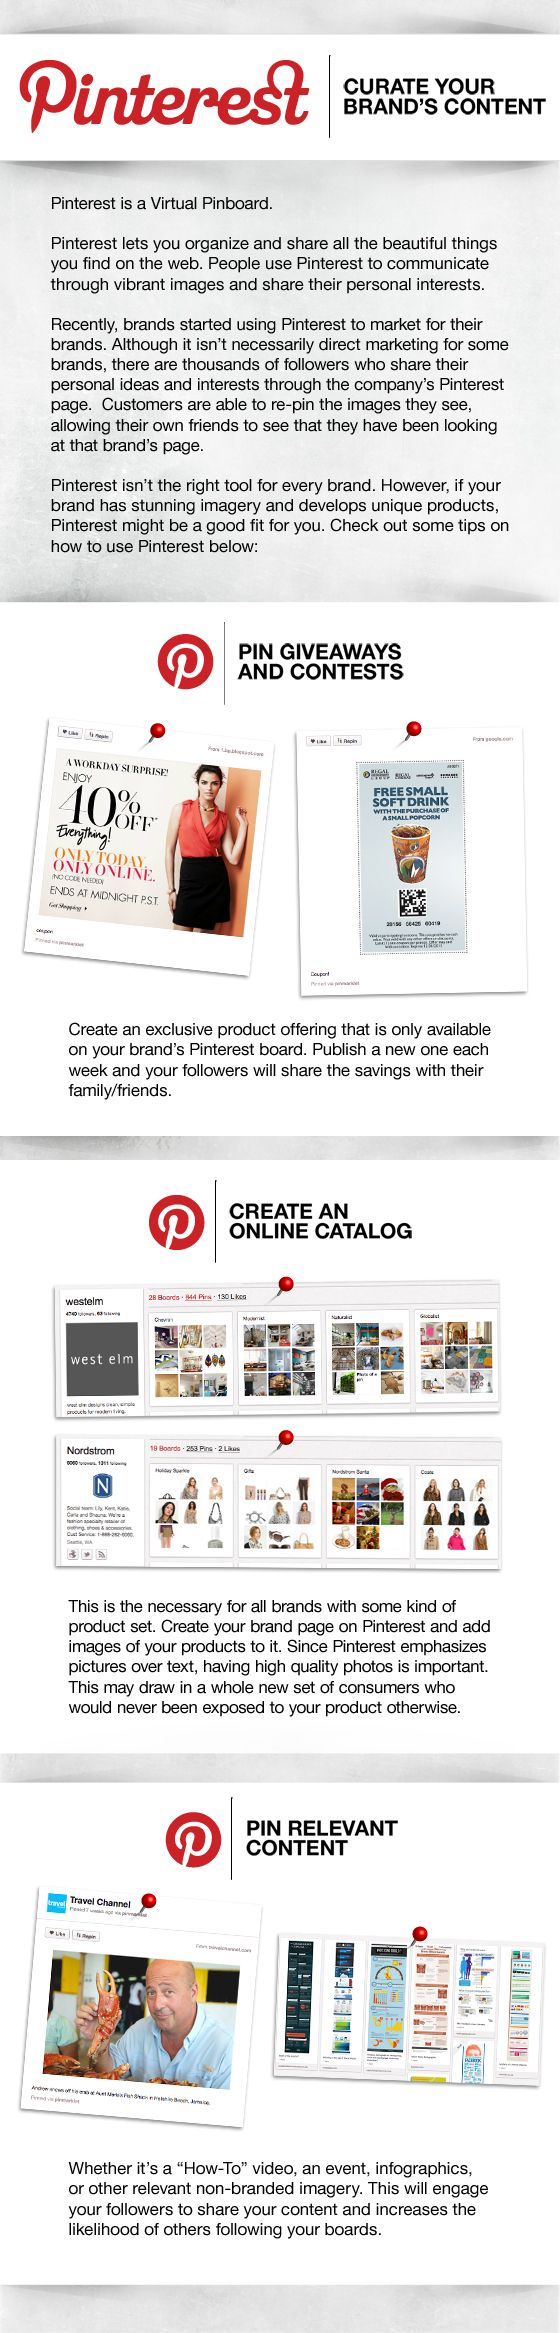 Curate Your Brand's Content With Pinterest: Likeable Media S, Pinterest Infographics, Pinterest Suggestions, Brand Content, Social Media, Media S Pinterest, Brand S Content, Pinterest Marketing